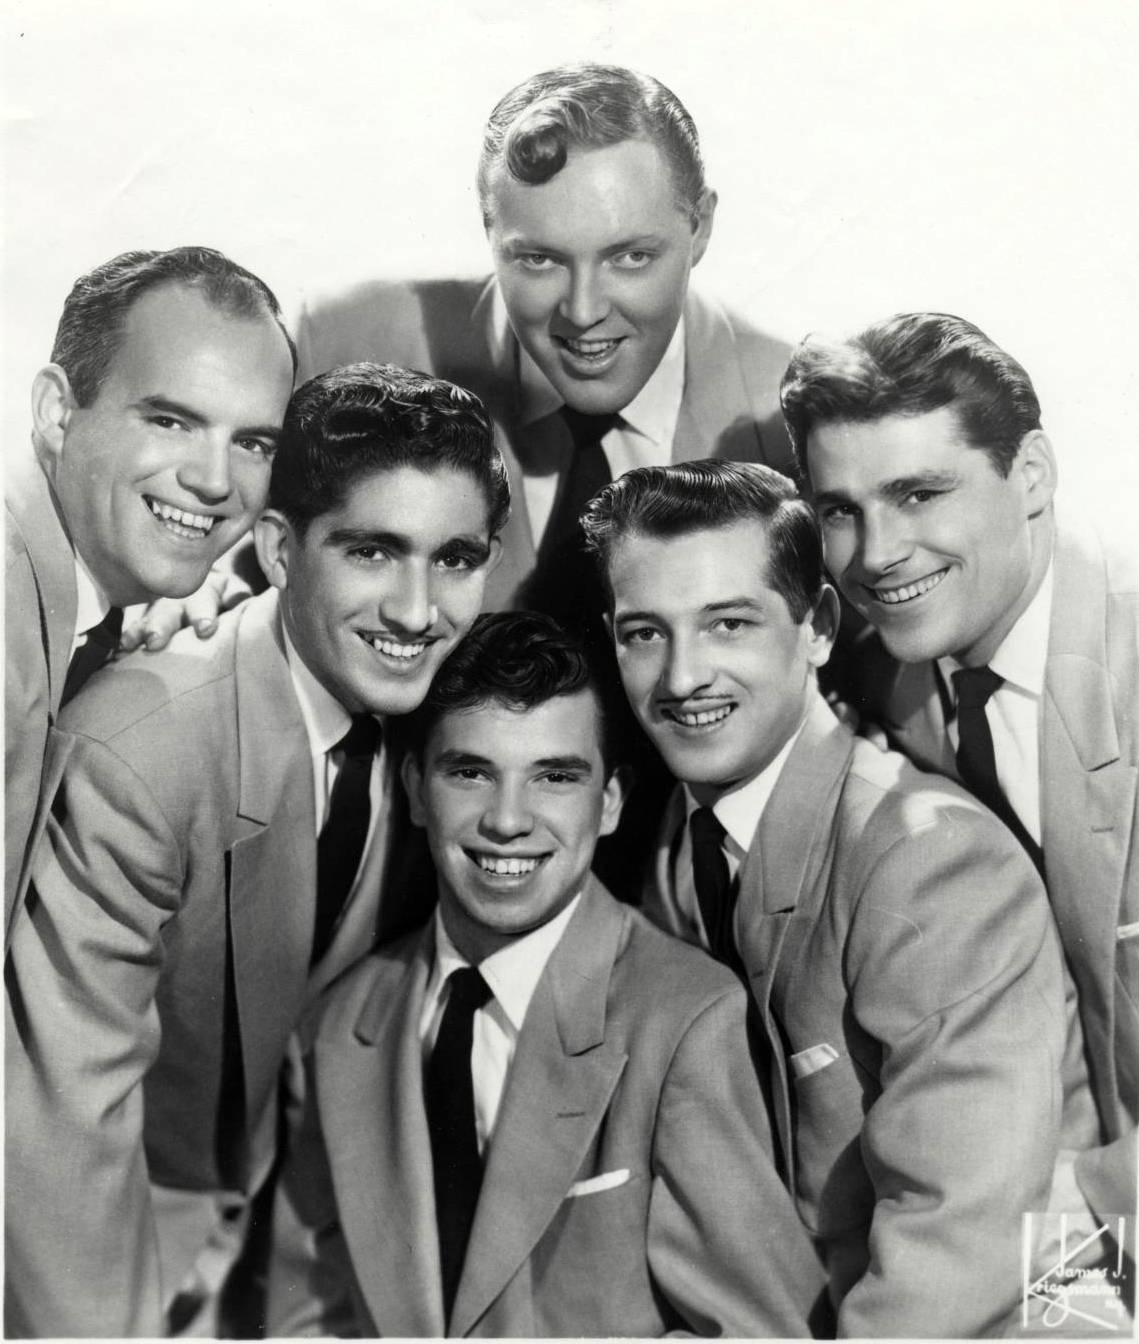 Bill-Haley---his-Comets-rocknroll-remembered-713902_1139_1344